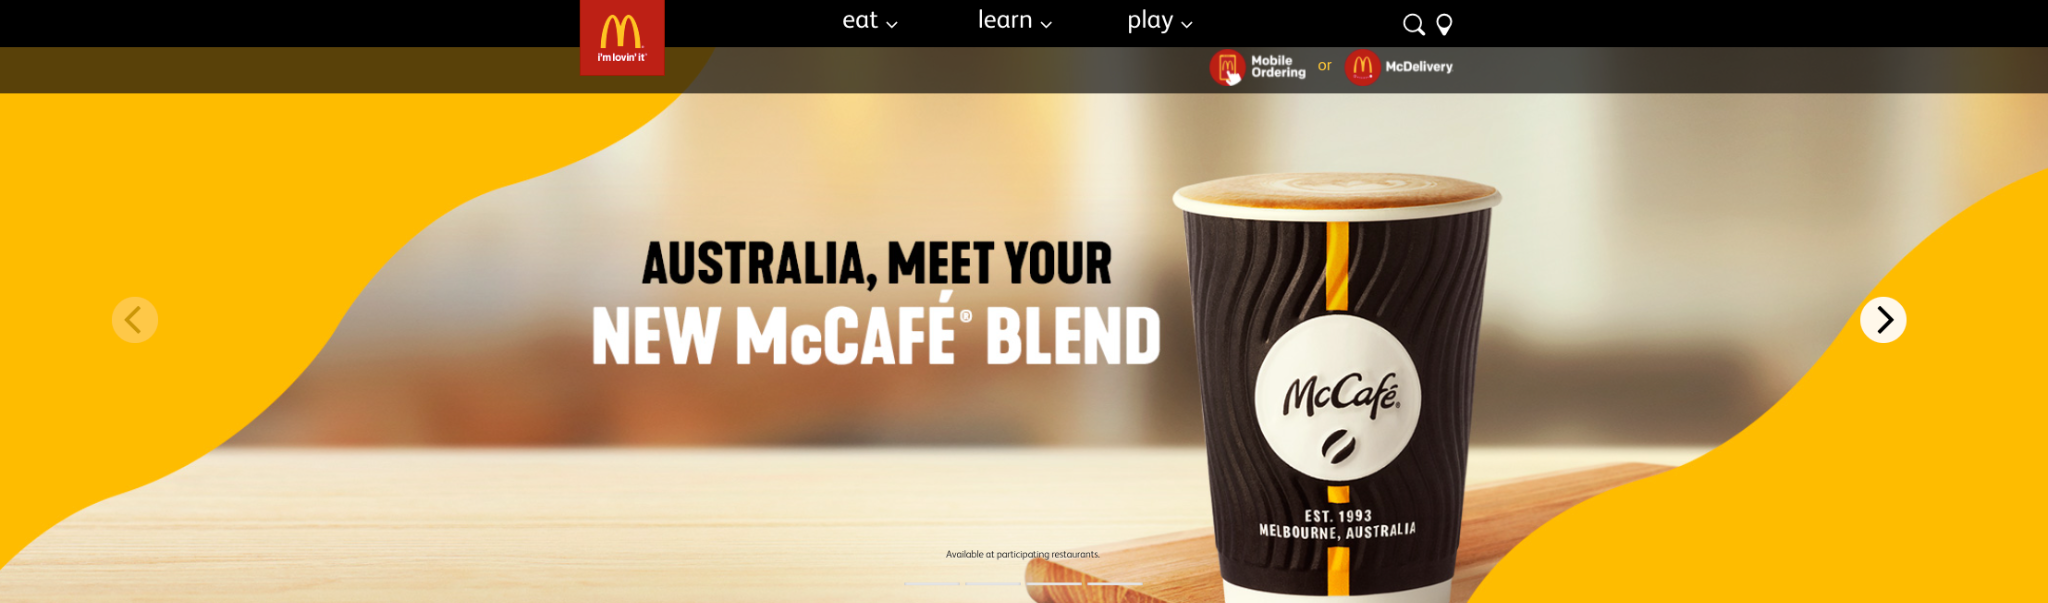 Snapshot of McDonalds homepage showing a coffee made by McCafé